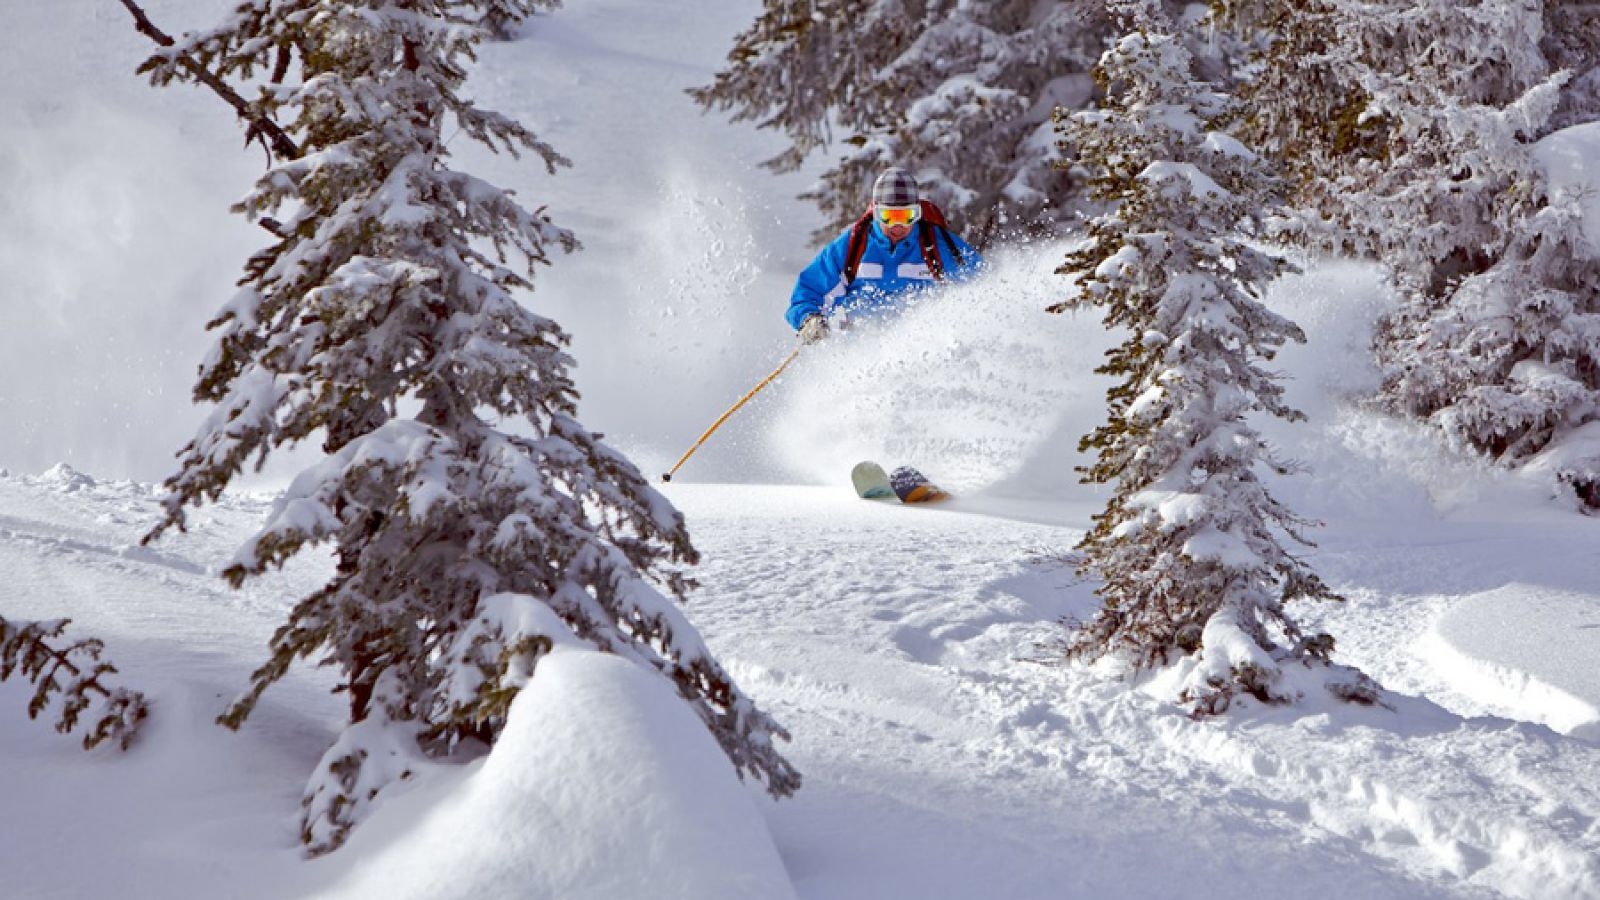 Float in the deep, dry powder.